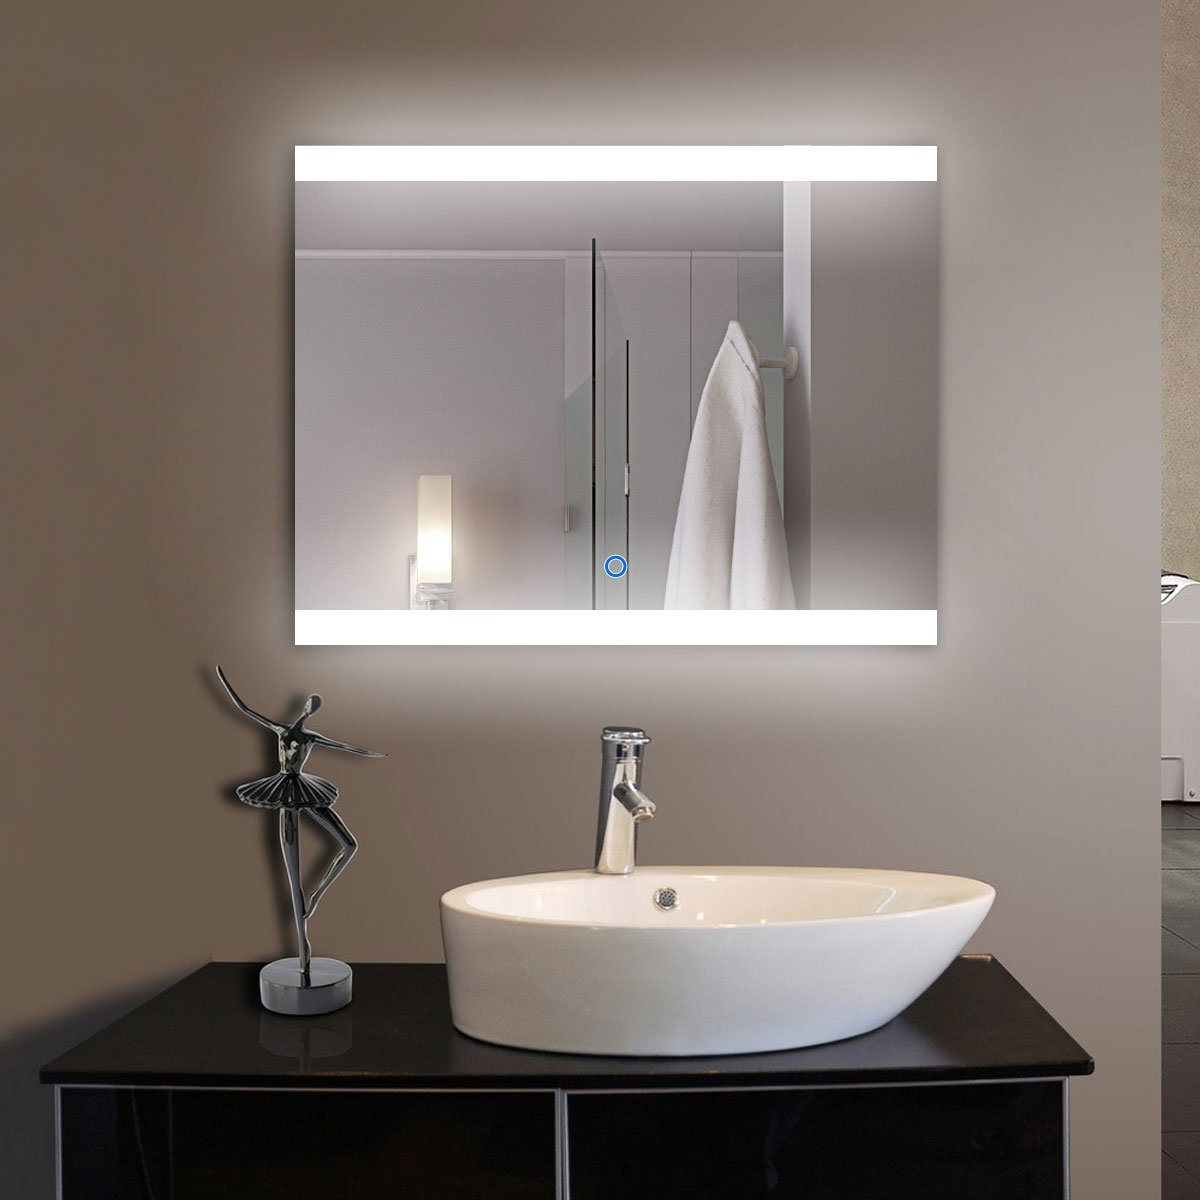 36 x 28 in Horizontal LED Bathroom Silvered Mirror with Touch Button (D-CL056)